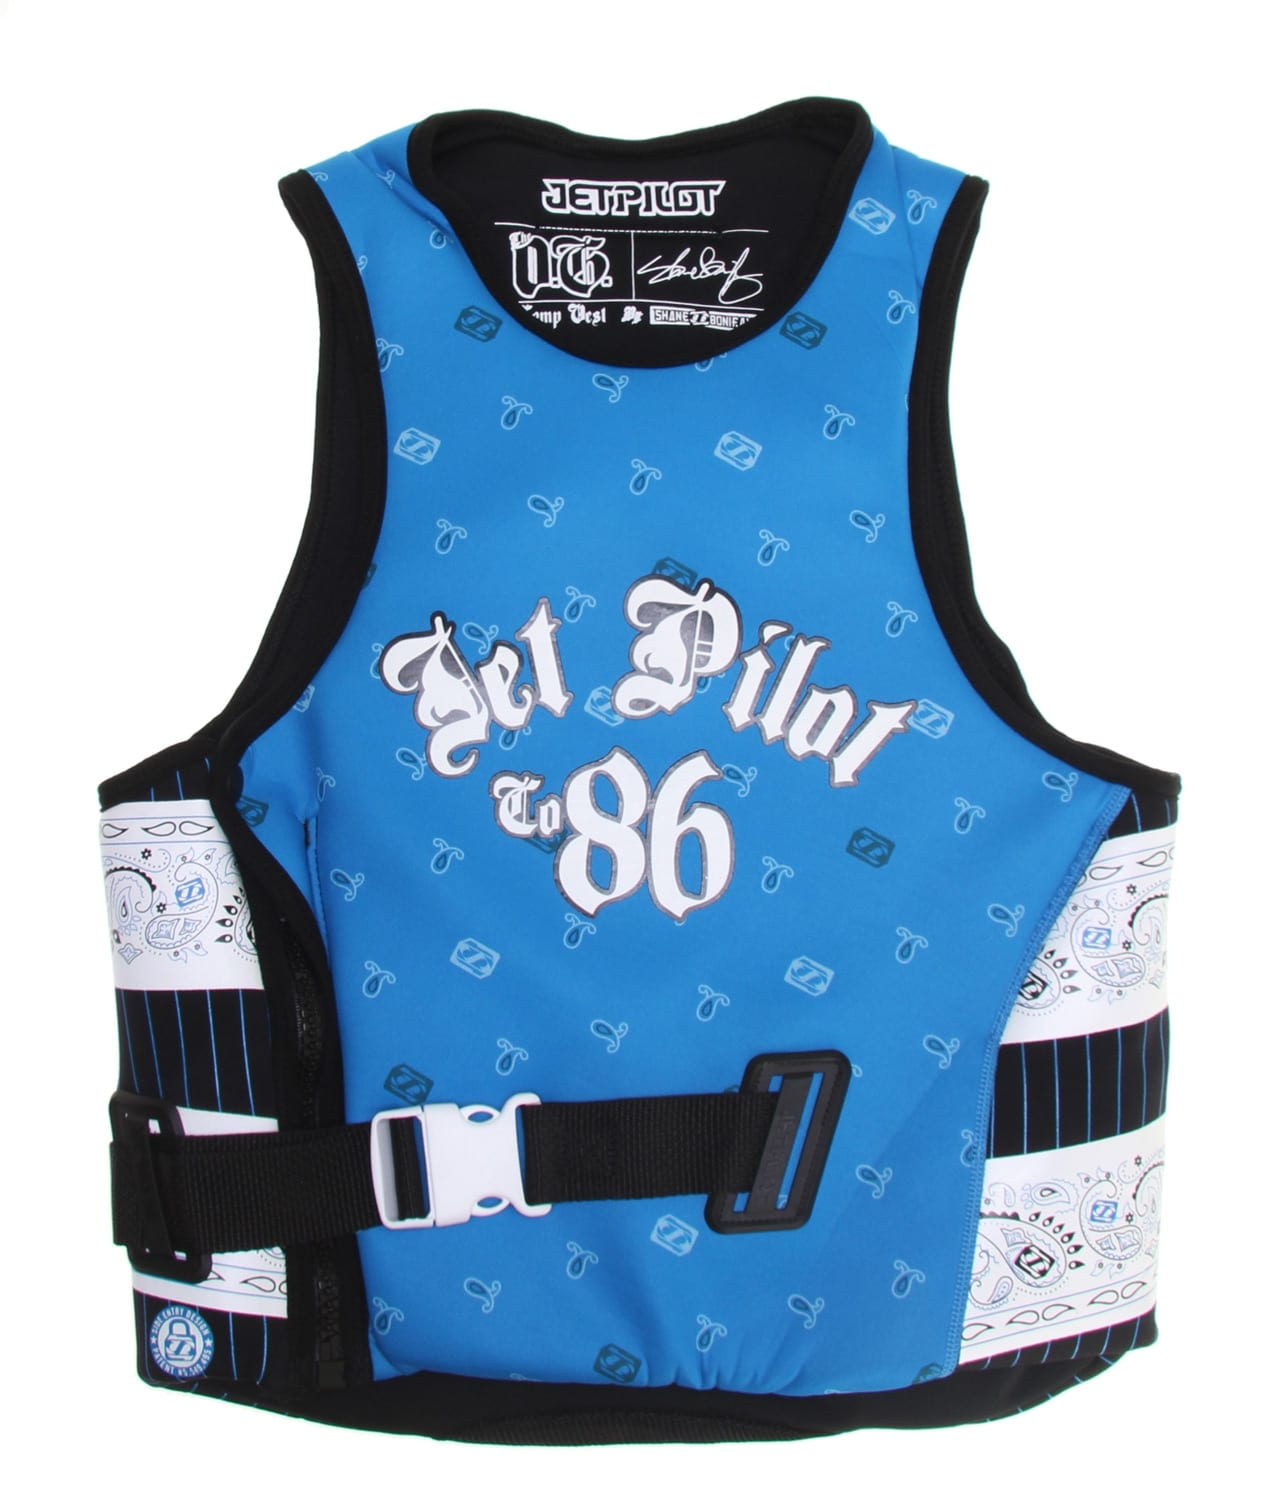 Shop for Jet Pilot OG Comp Wakeboard Vest w/ Utak Lining Blue - Men's